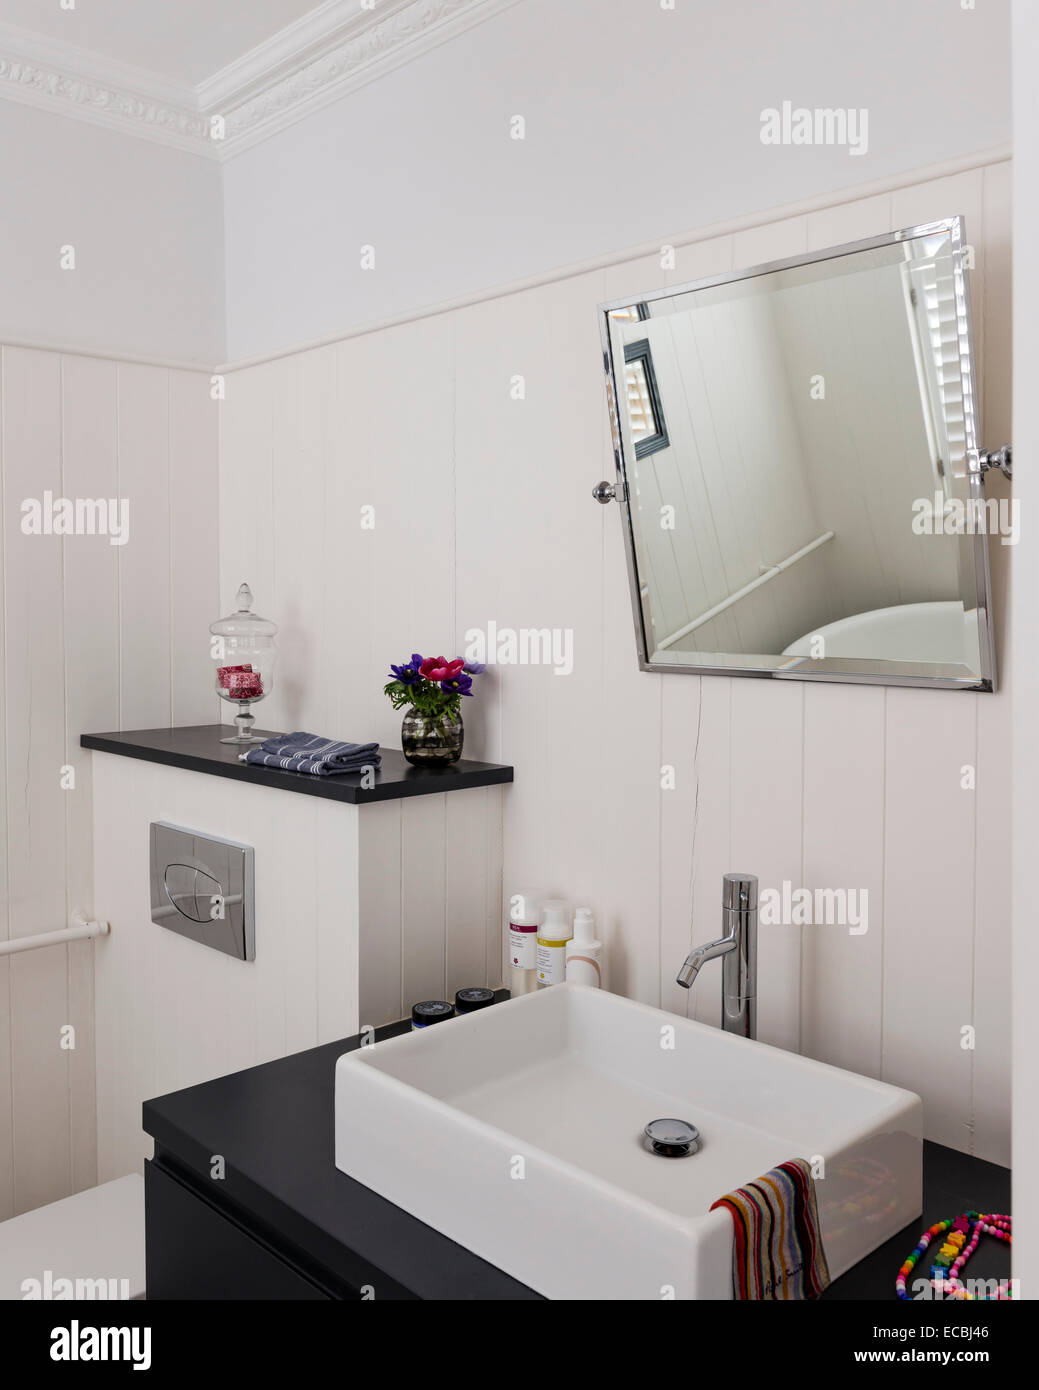 Modern sink and angled mirror in bathroom with white wood panelling - Stock Image